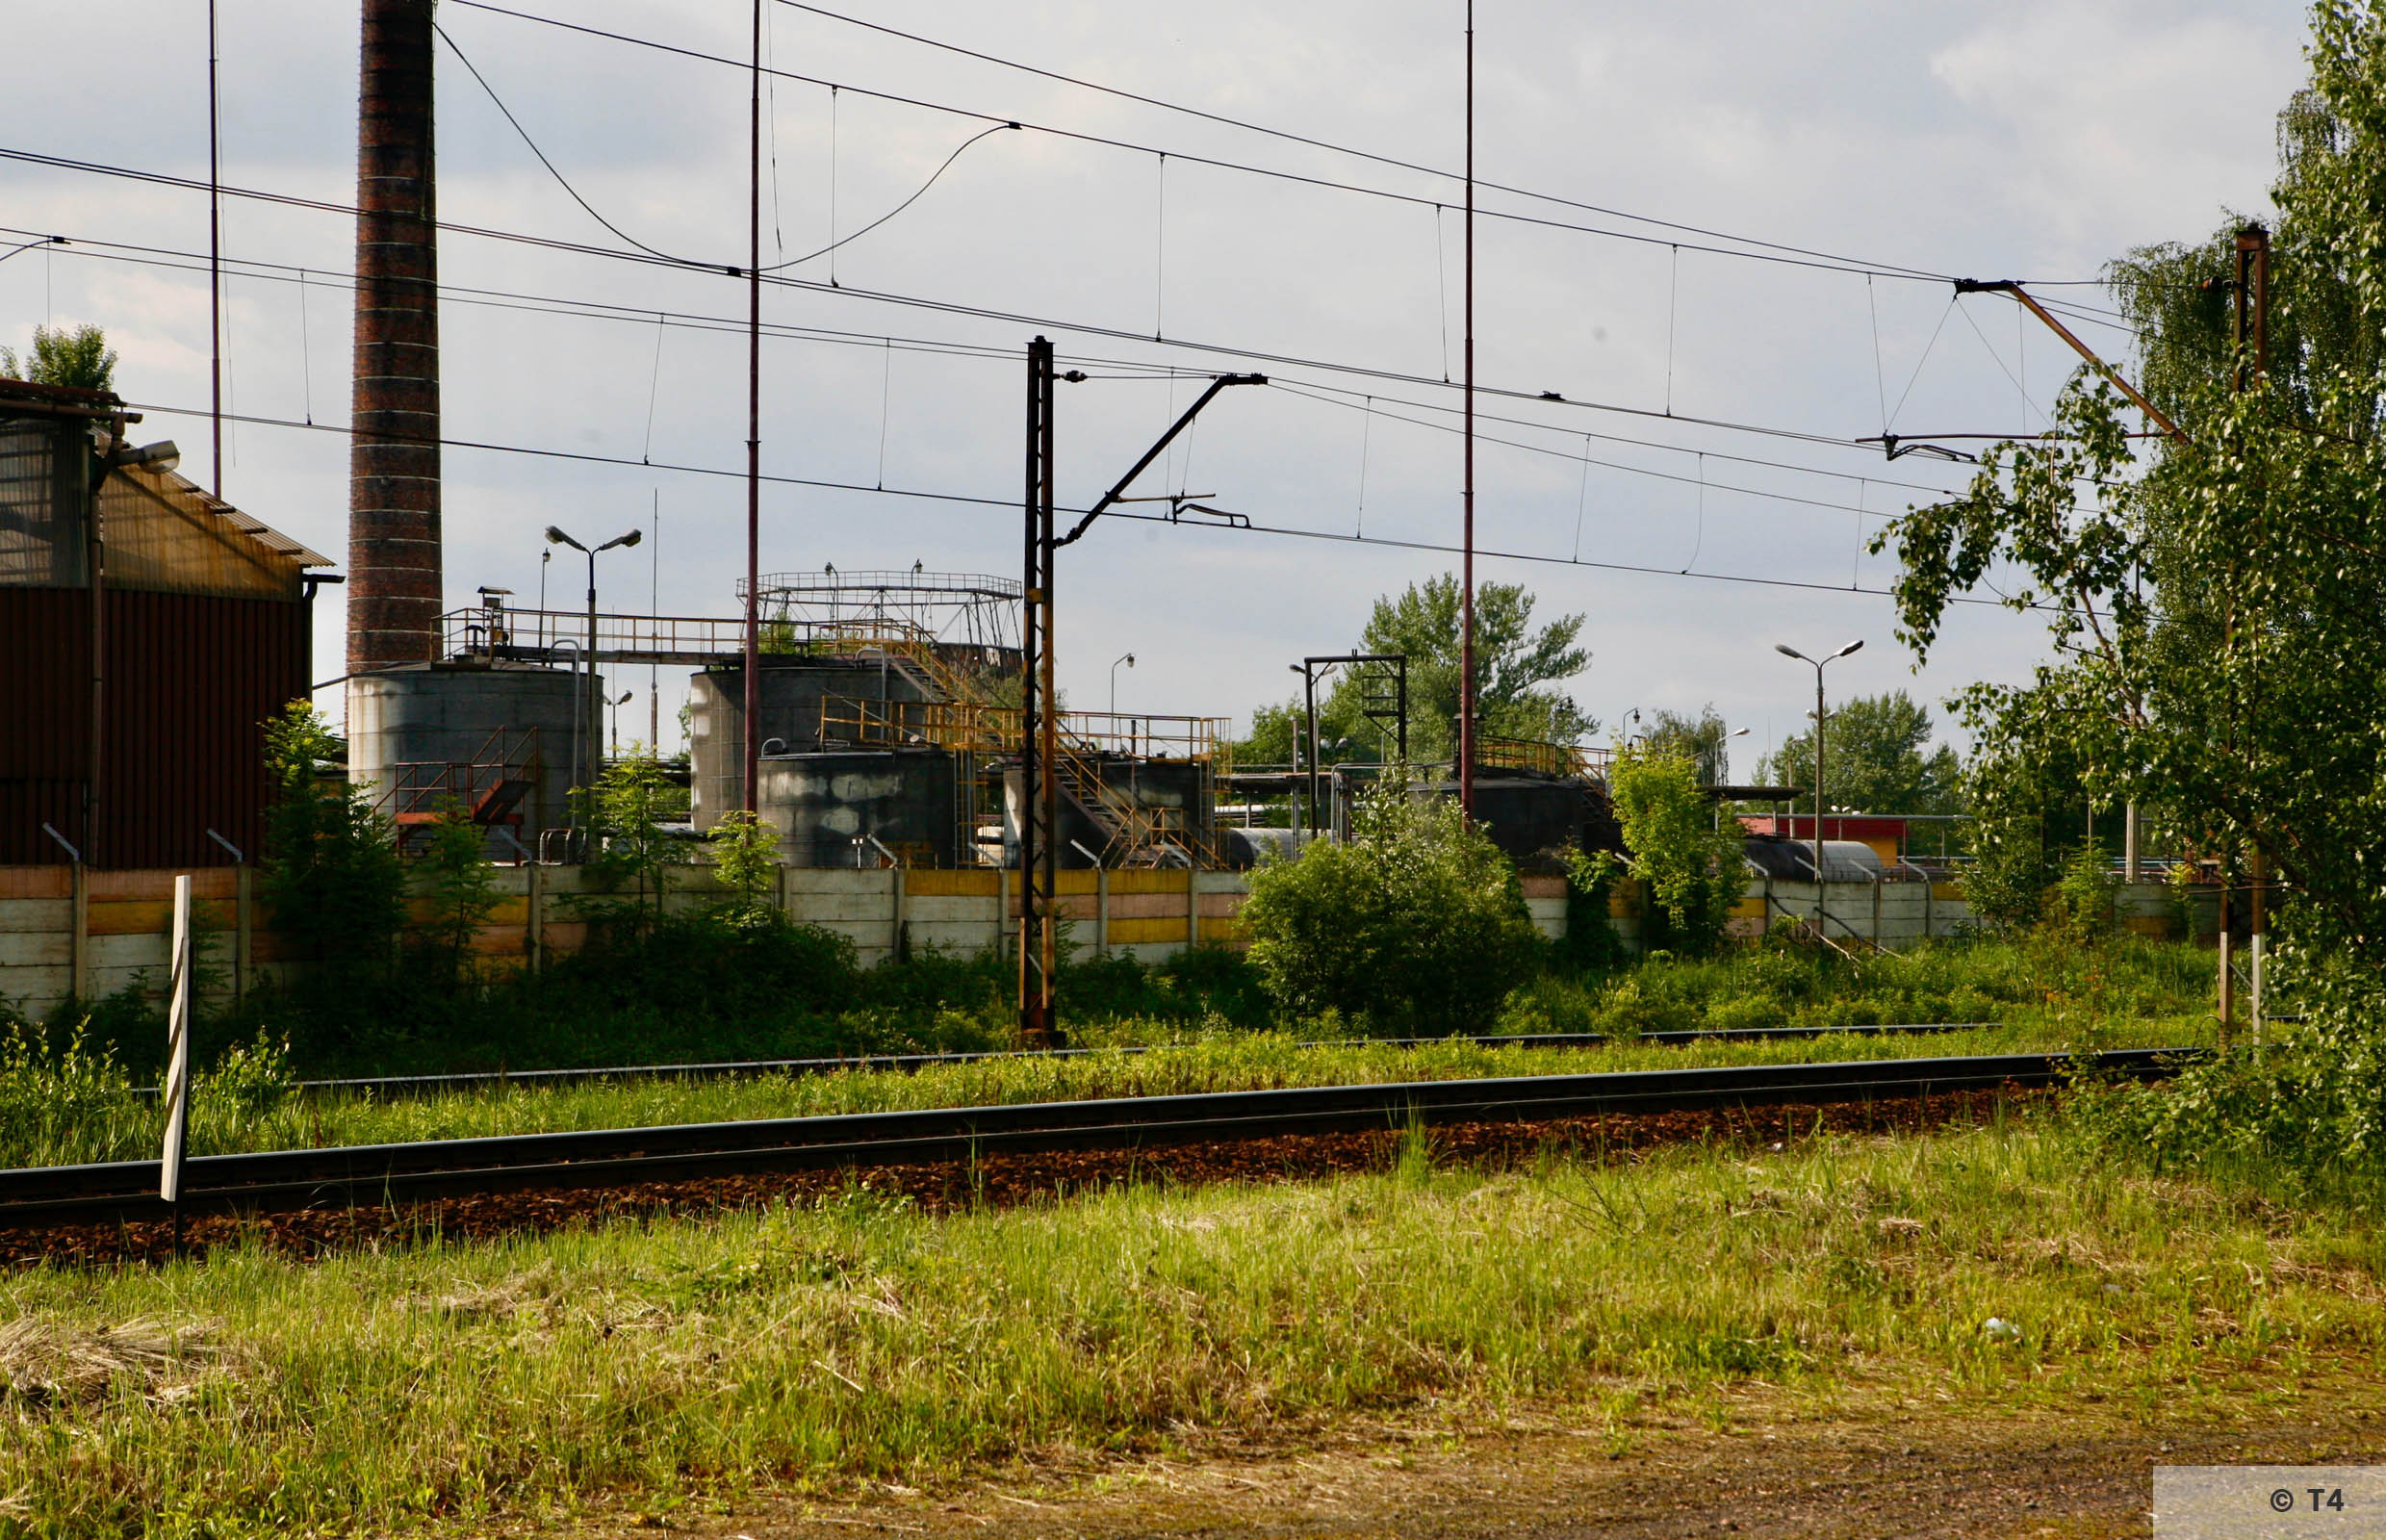 Czechowice refinery from the railway stop near the former sub camp. 2006 T4 6669